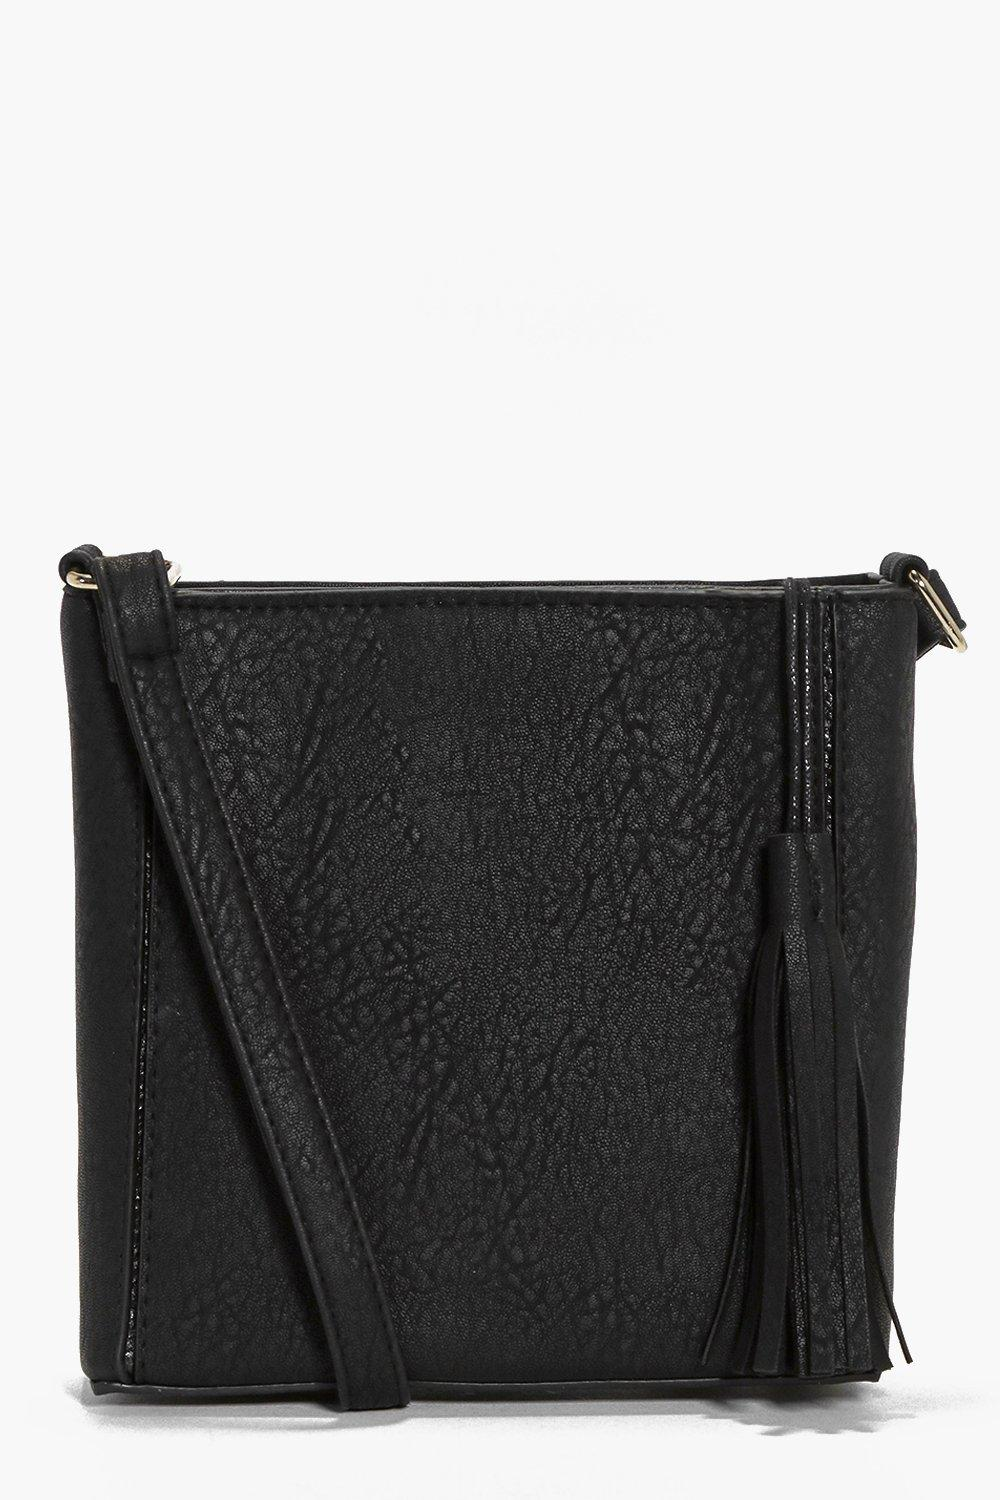 Zoe Square Structured Tassel Cross Body Bag